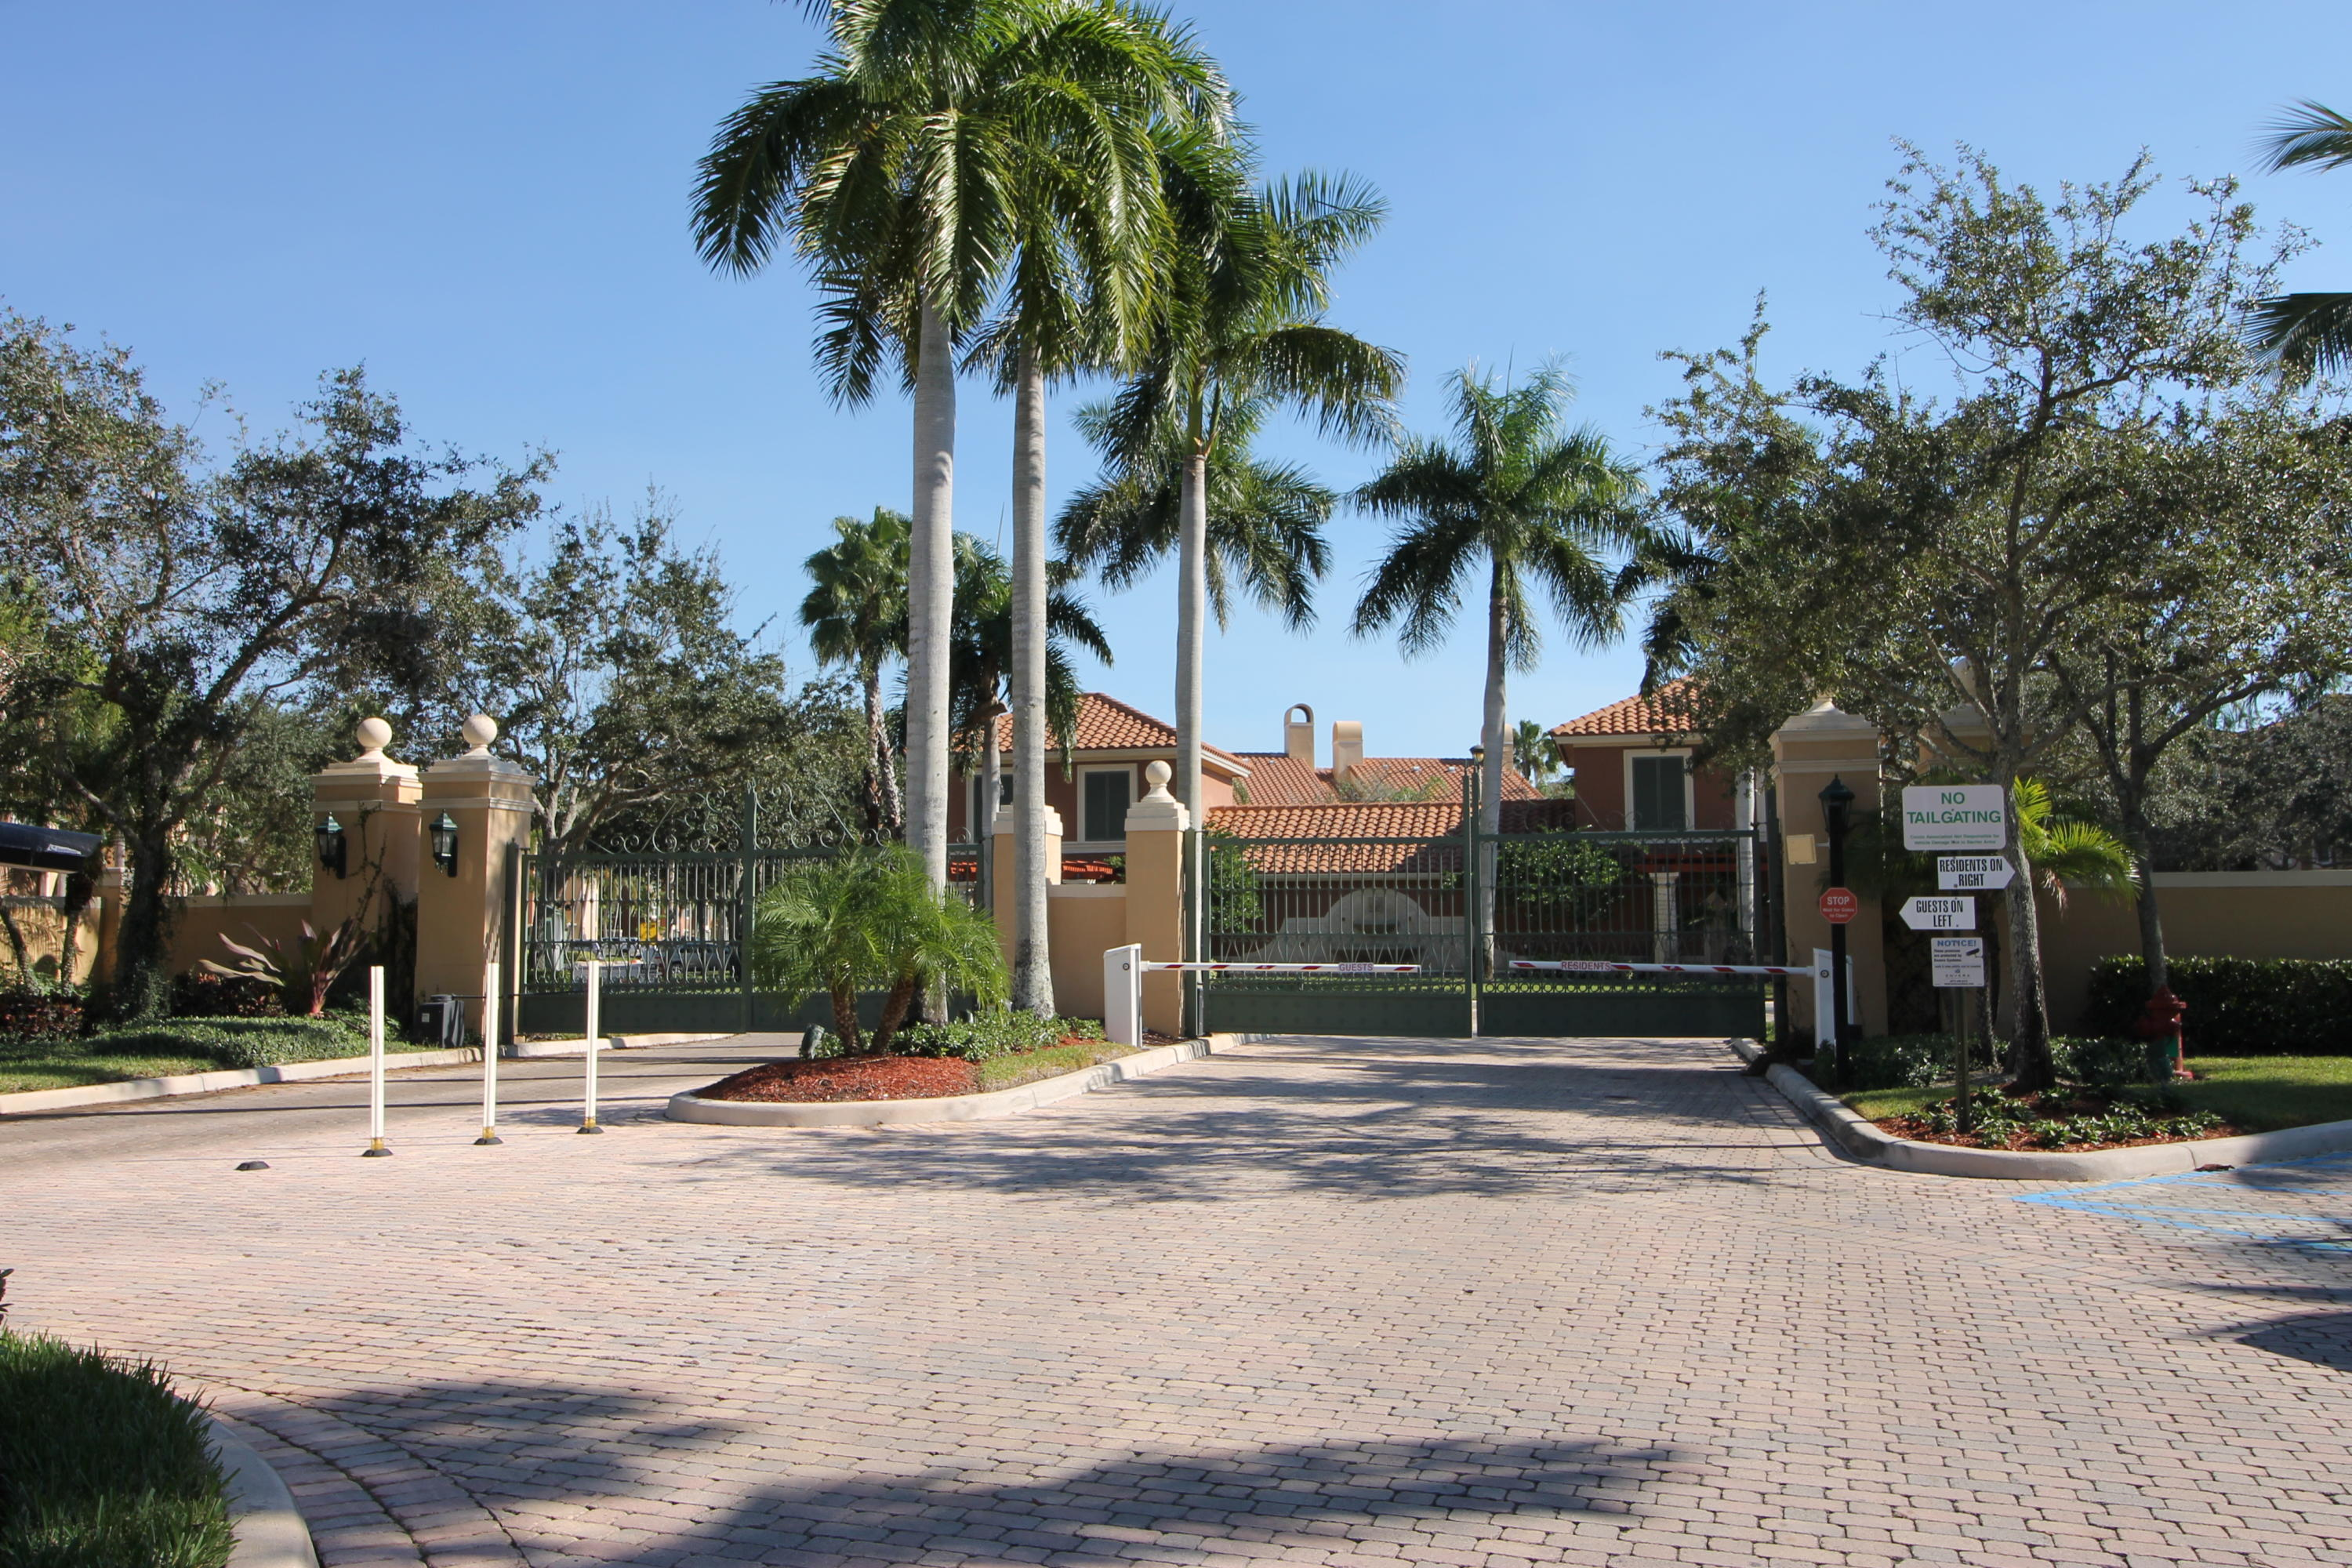 11720 St Andrews Place, Wellington, Florida 33414, 2 Bedrooms Bedrooms, ,2 BathroomsBathrooms,Condo/Coop,For Rent,St Andrews,2,RX-10528664